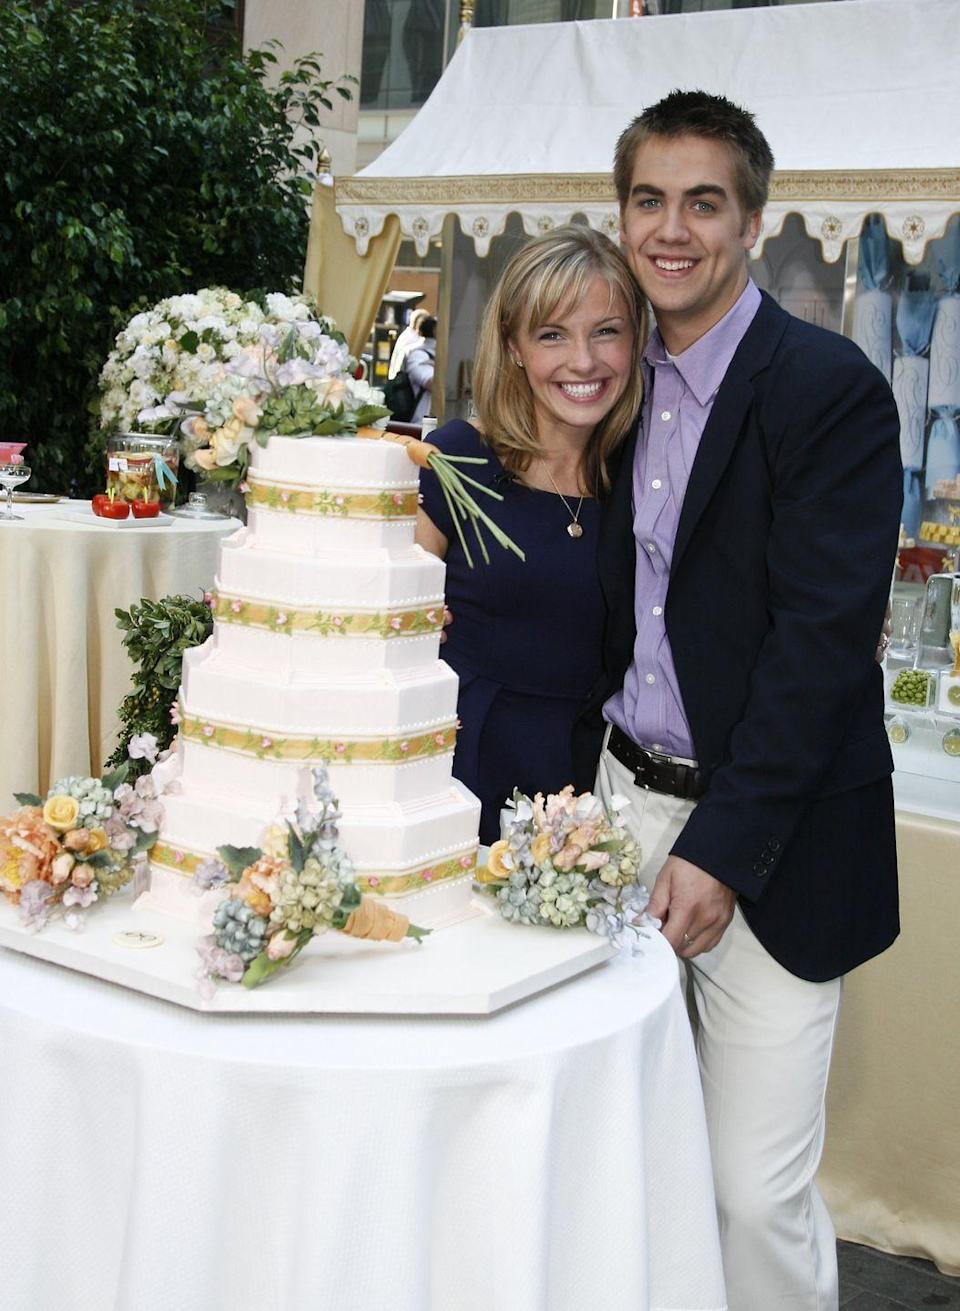 "<p>Weddings are no longer just an intimate family affair. Couples are publicizing their ceremonies through media outlets, like when Jessica Mapel and Cody Heleson wed on ""<em>Today</em> Throws a Martha Stewart Wedding"" (the first televised wedding on the Today show <a href=""http://www.today.com/style/picture-perfect-take-stroll-down-aisle-today-s-favorite-weddings-t81996"" rel=""nofollow noopener"" target=""_blank"" data-ylk=""slk:happened in 2000"" class=""link rapid-noclick-resp"">happened in 2000</a>). Millions of viewers voted on every detail of their big day, including which wedding cake they would cut into. <em>Say Yes to the Dress</em> also premiered in 2007, providing an intimate peek into the dress buying process.</p>"